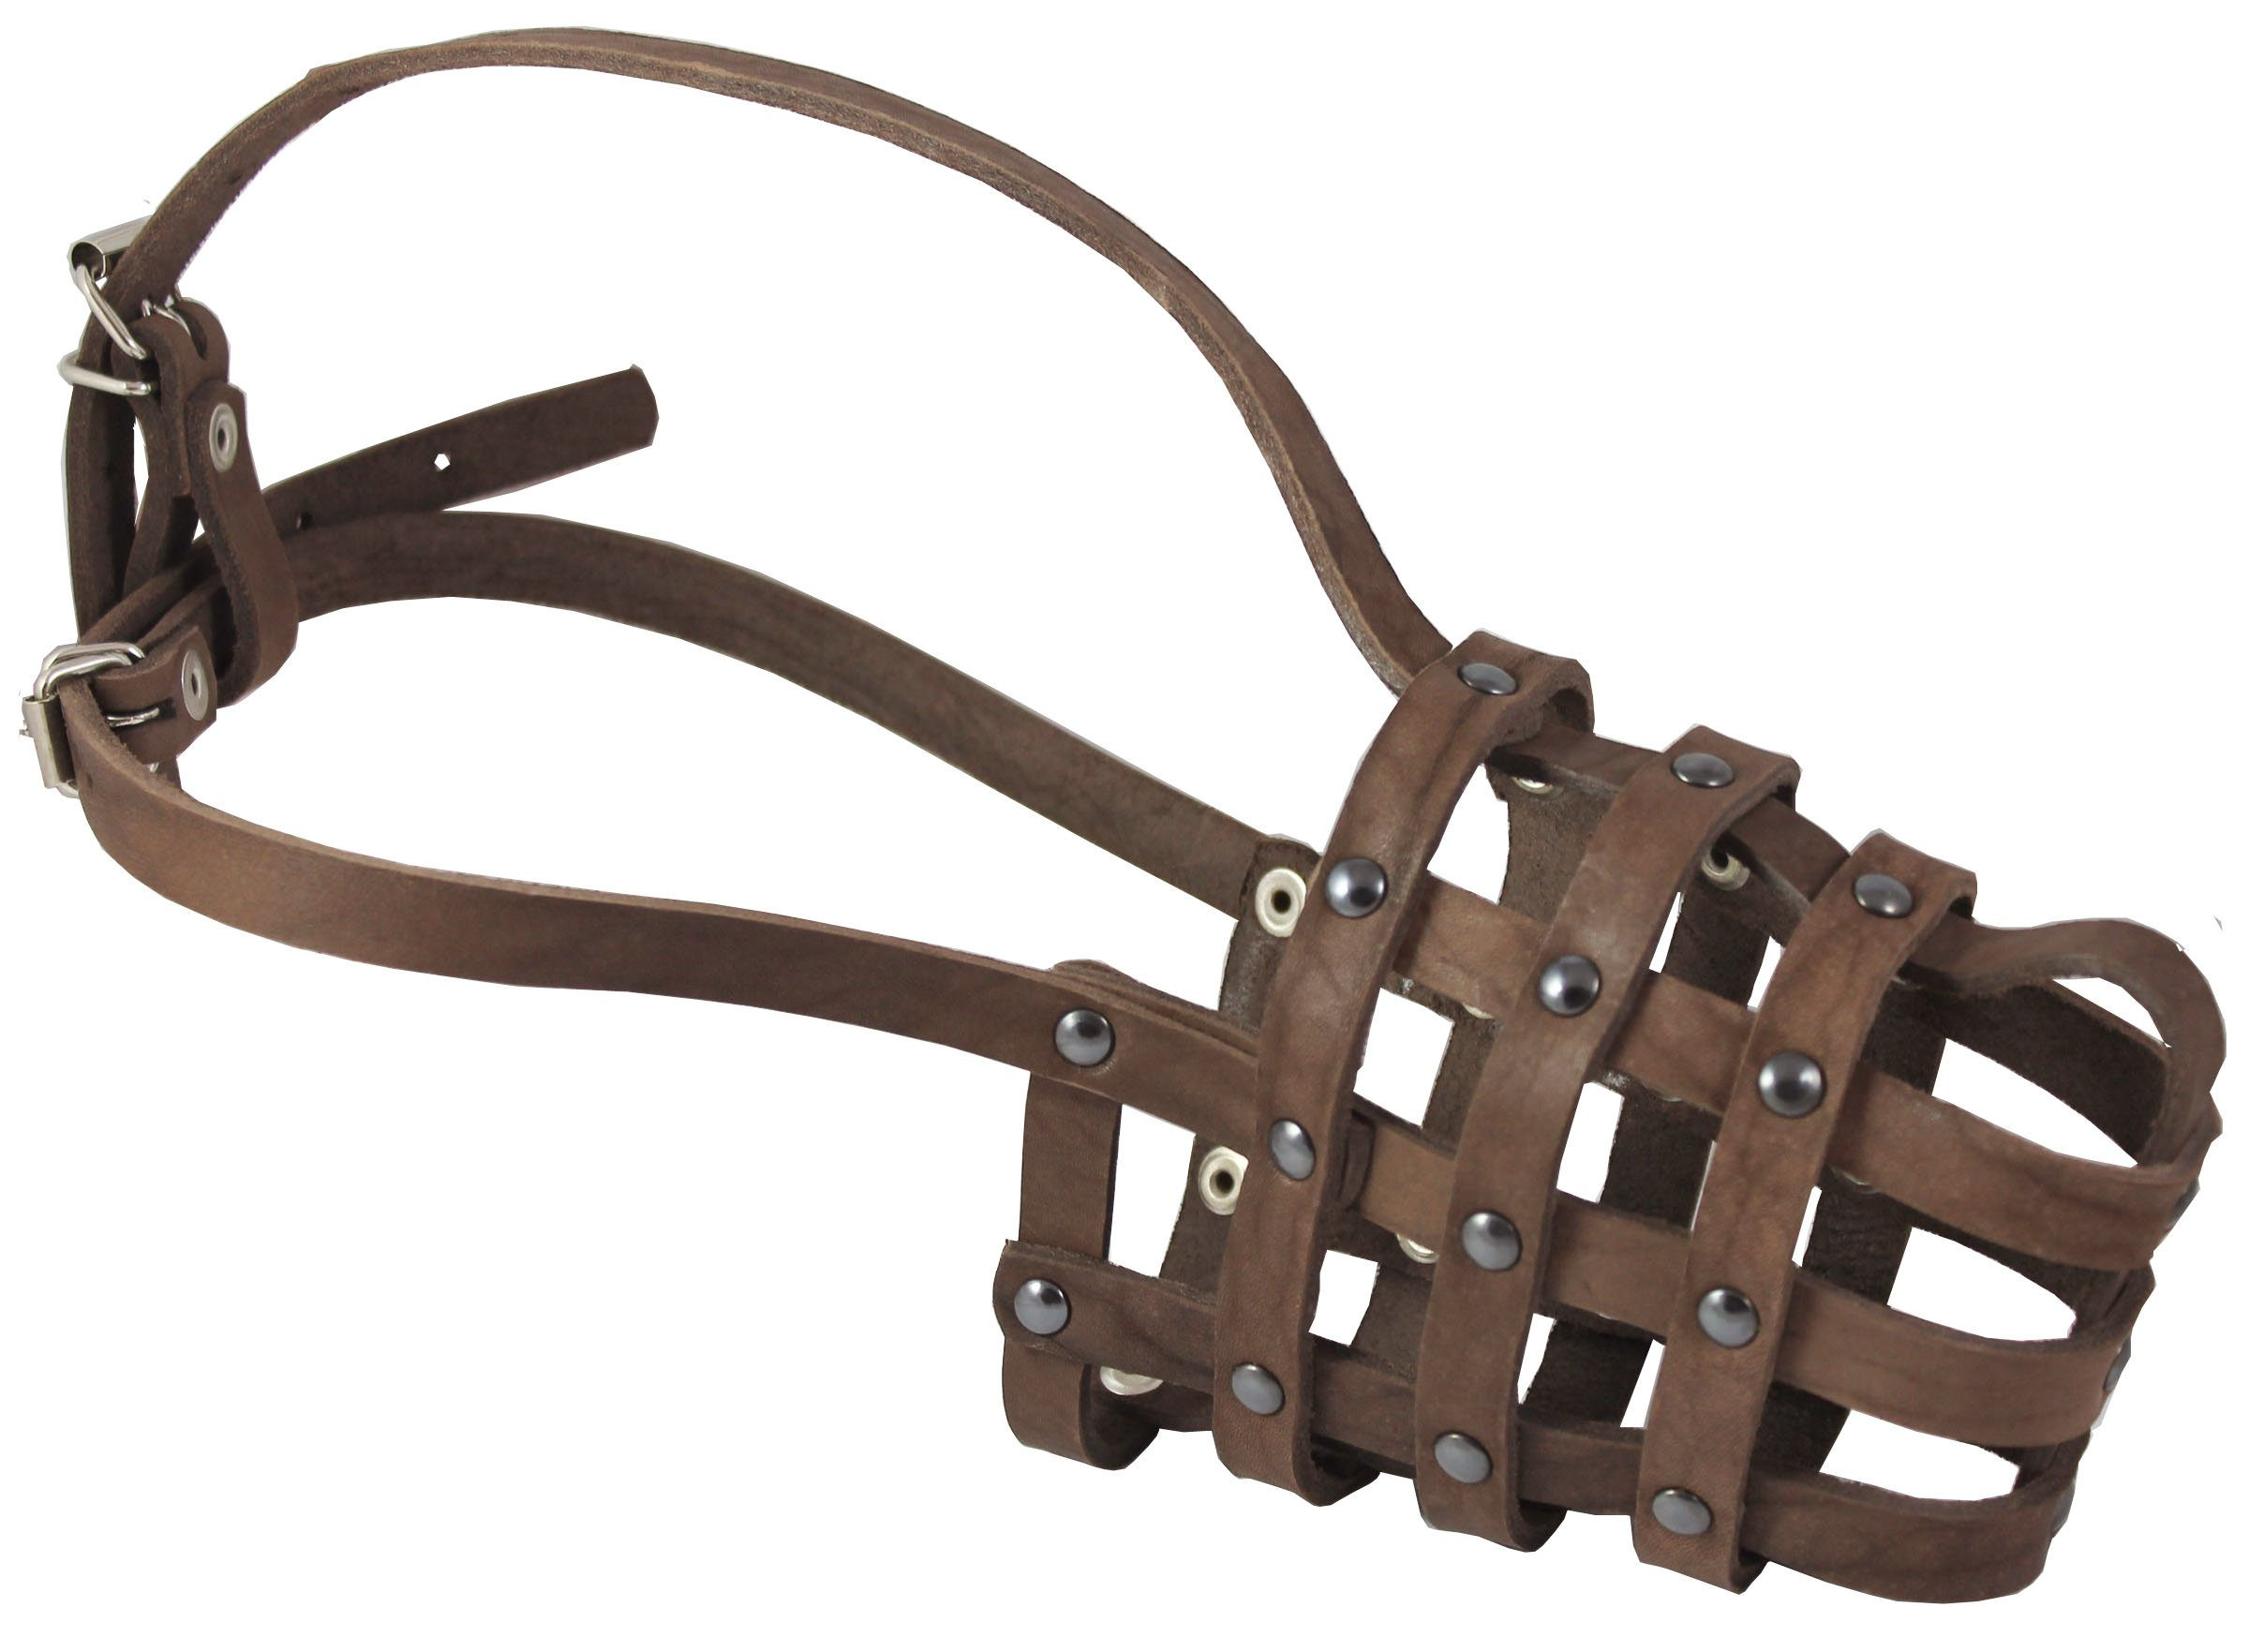 Leather Mesh Basket Secure Dog Muzzle #143 Brown - German Shepherd, Labrador, Husky, Retriever (Circumference 11.5'', Snout Length 4.25'') by Dogs My Love